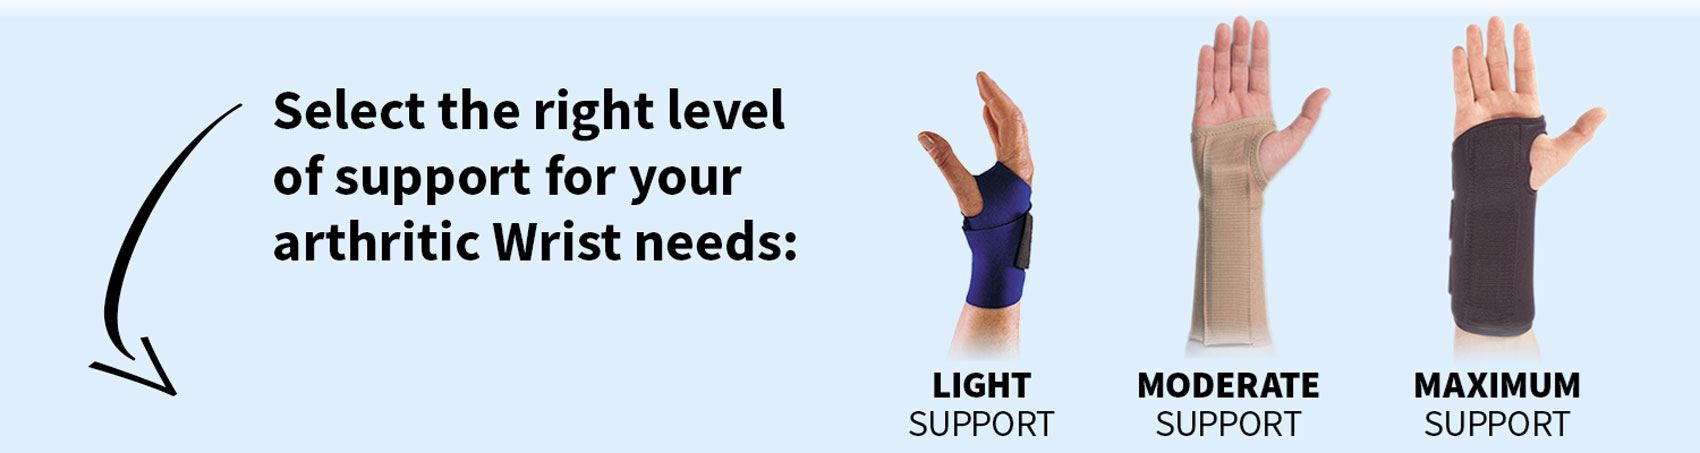 Select the right level of support for your arthritic wrist needs